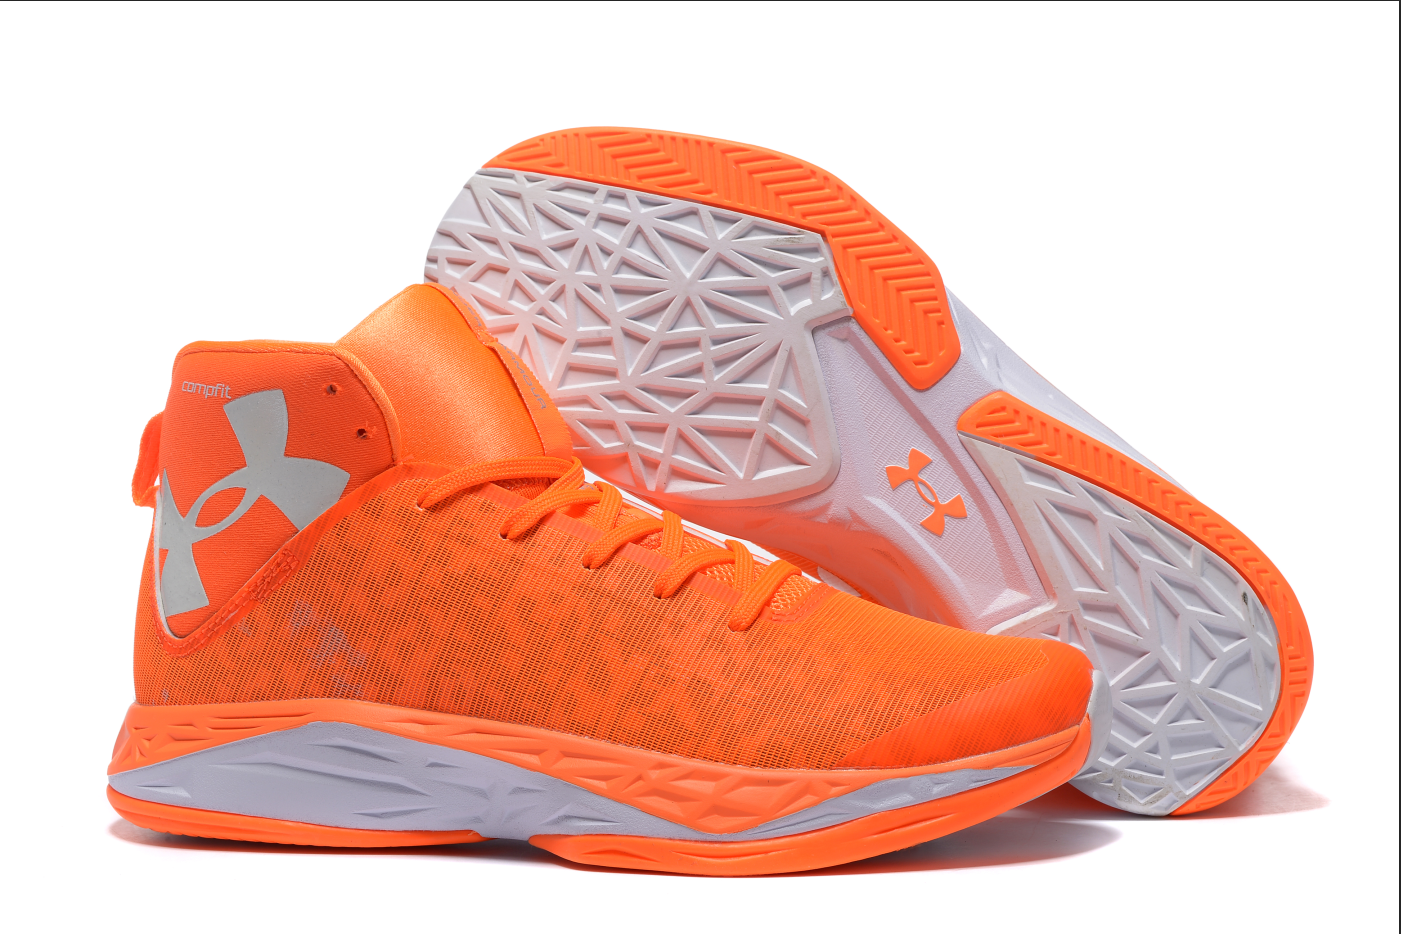 Stephen Curry 6 - Homme Orange Chaussure de Basket